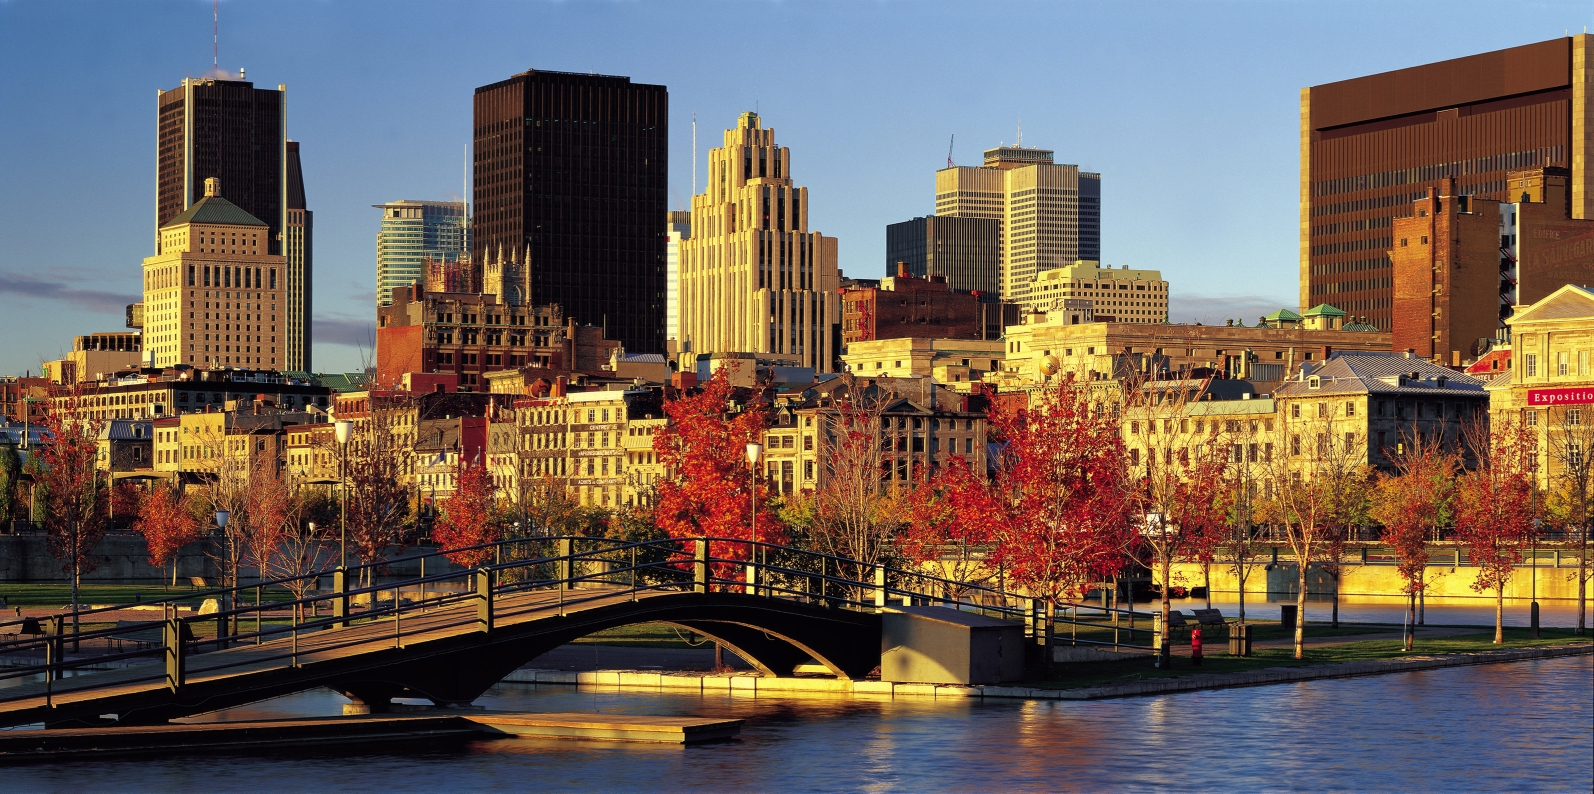 Landscape shot of Montreal with a river in the foreground